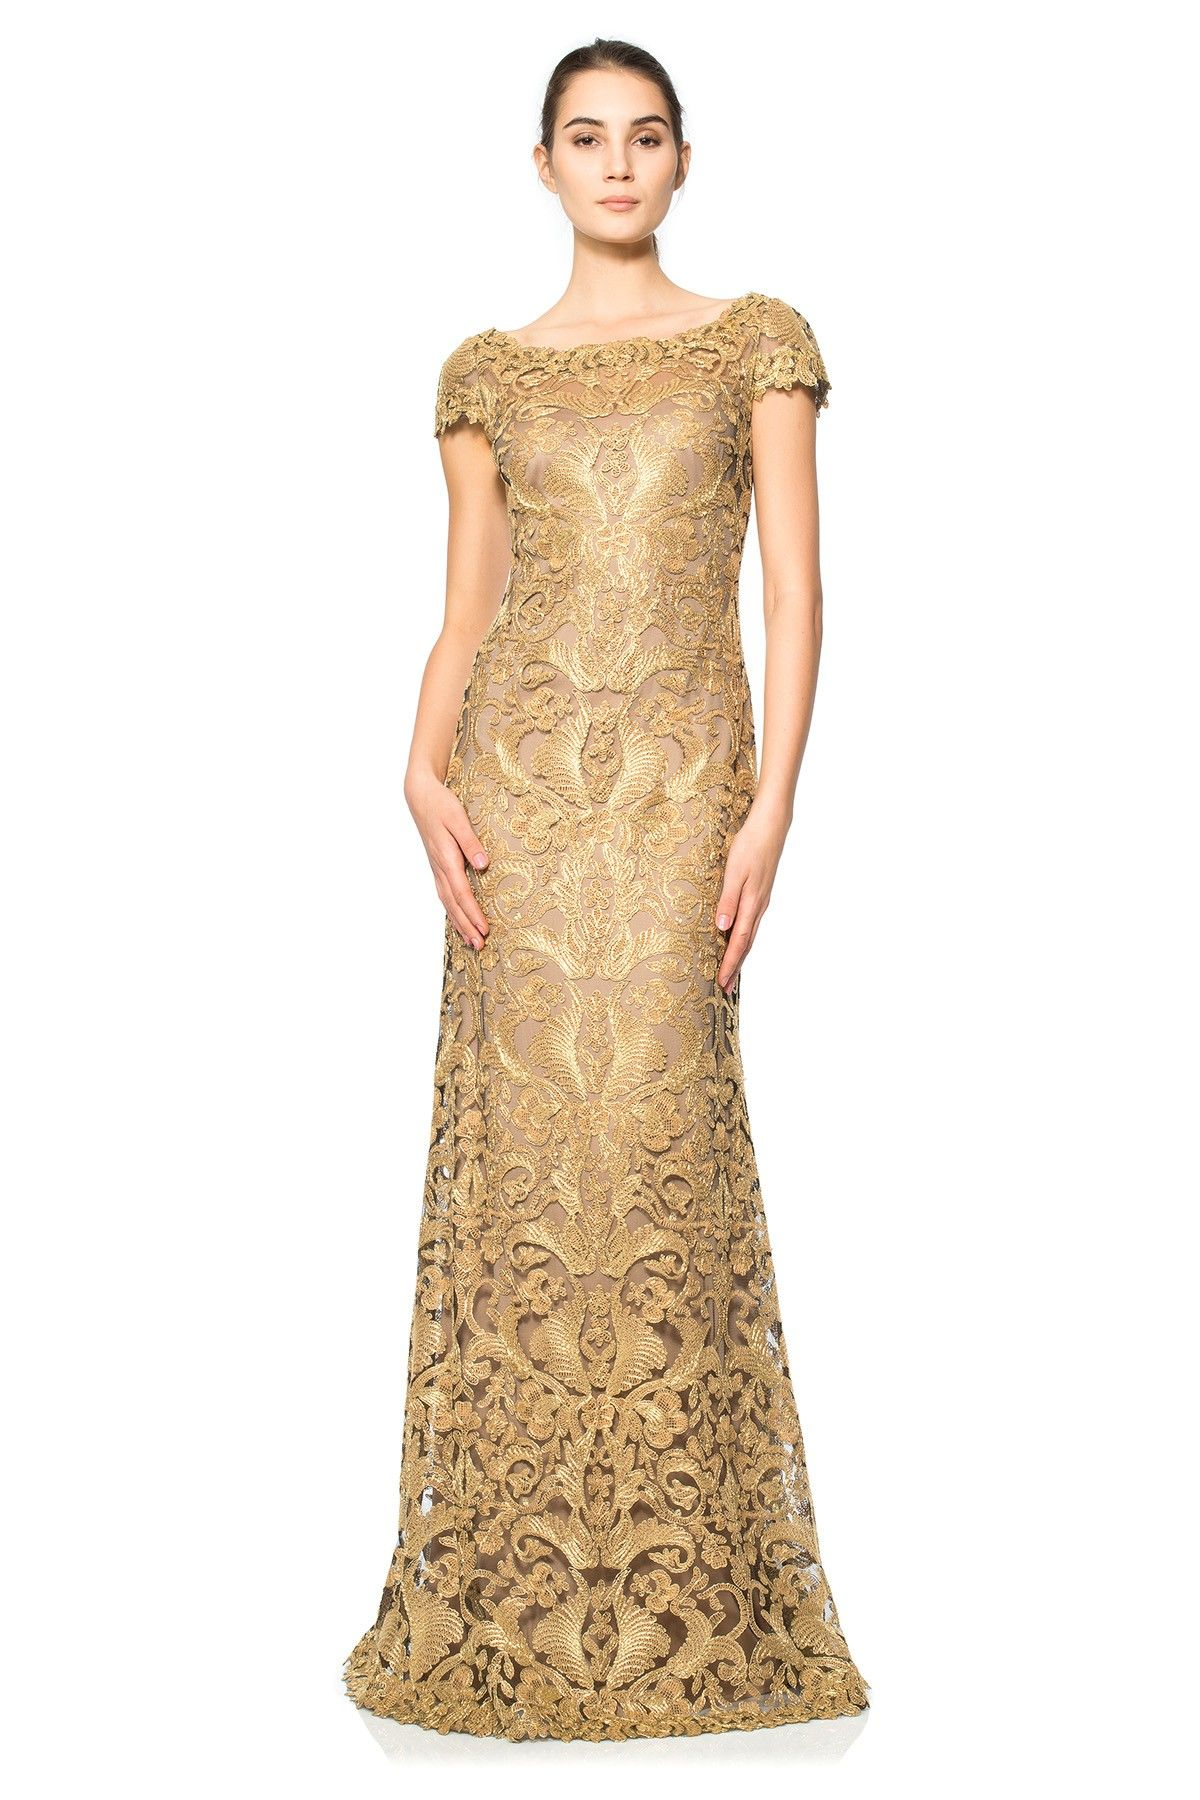 This With White Lining Corded Metallic Embroidery On Tulle Cap Sleeve Gown Tadashi Shoji